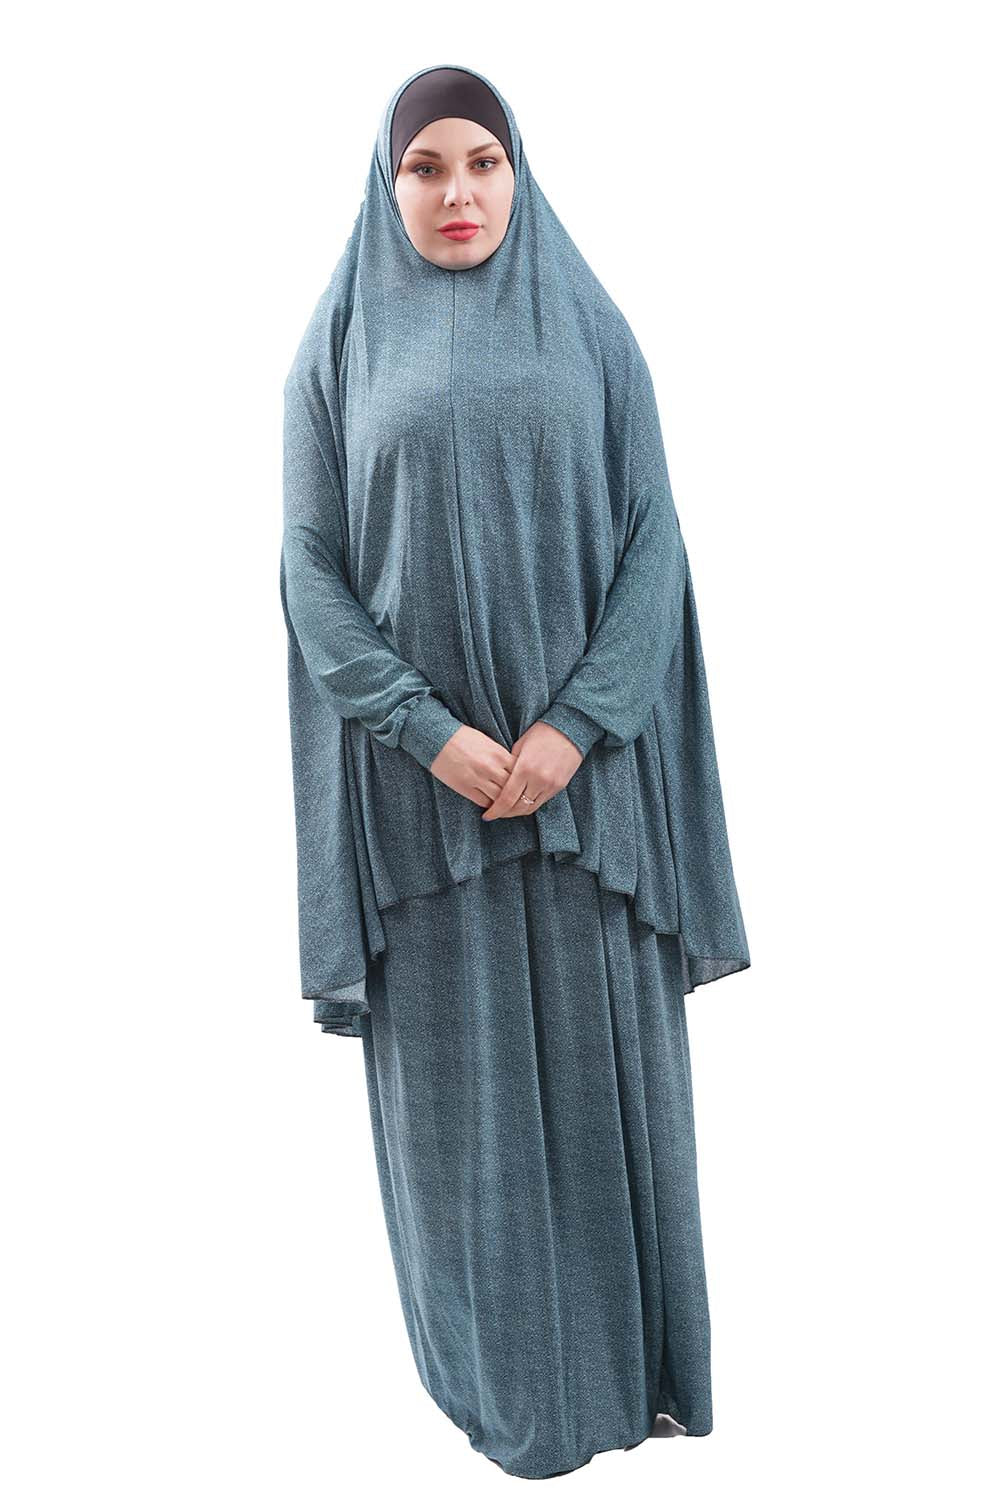 Prayer Clothes (With Sleeves)